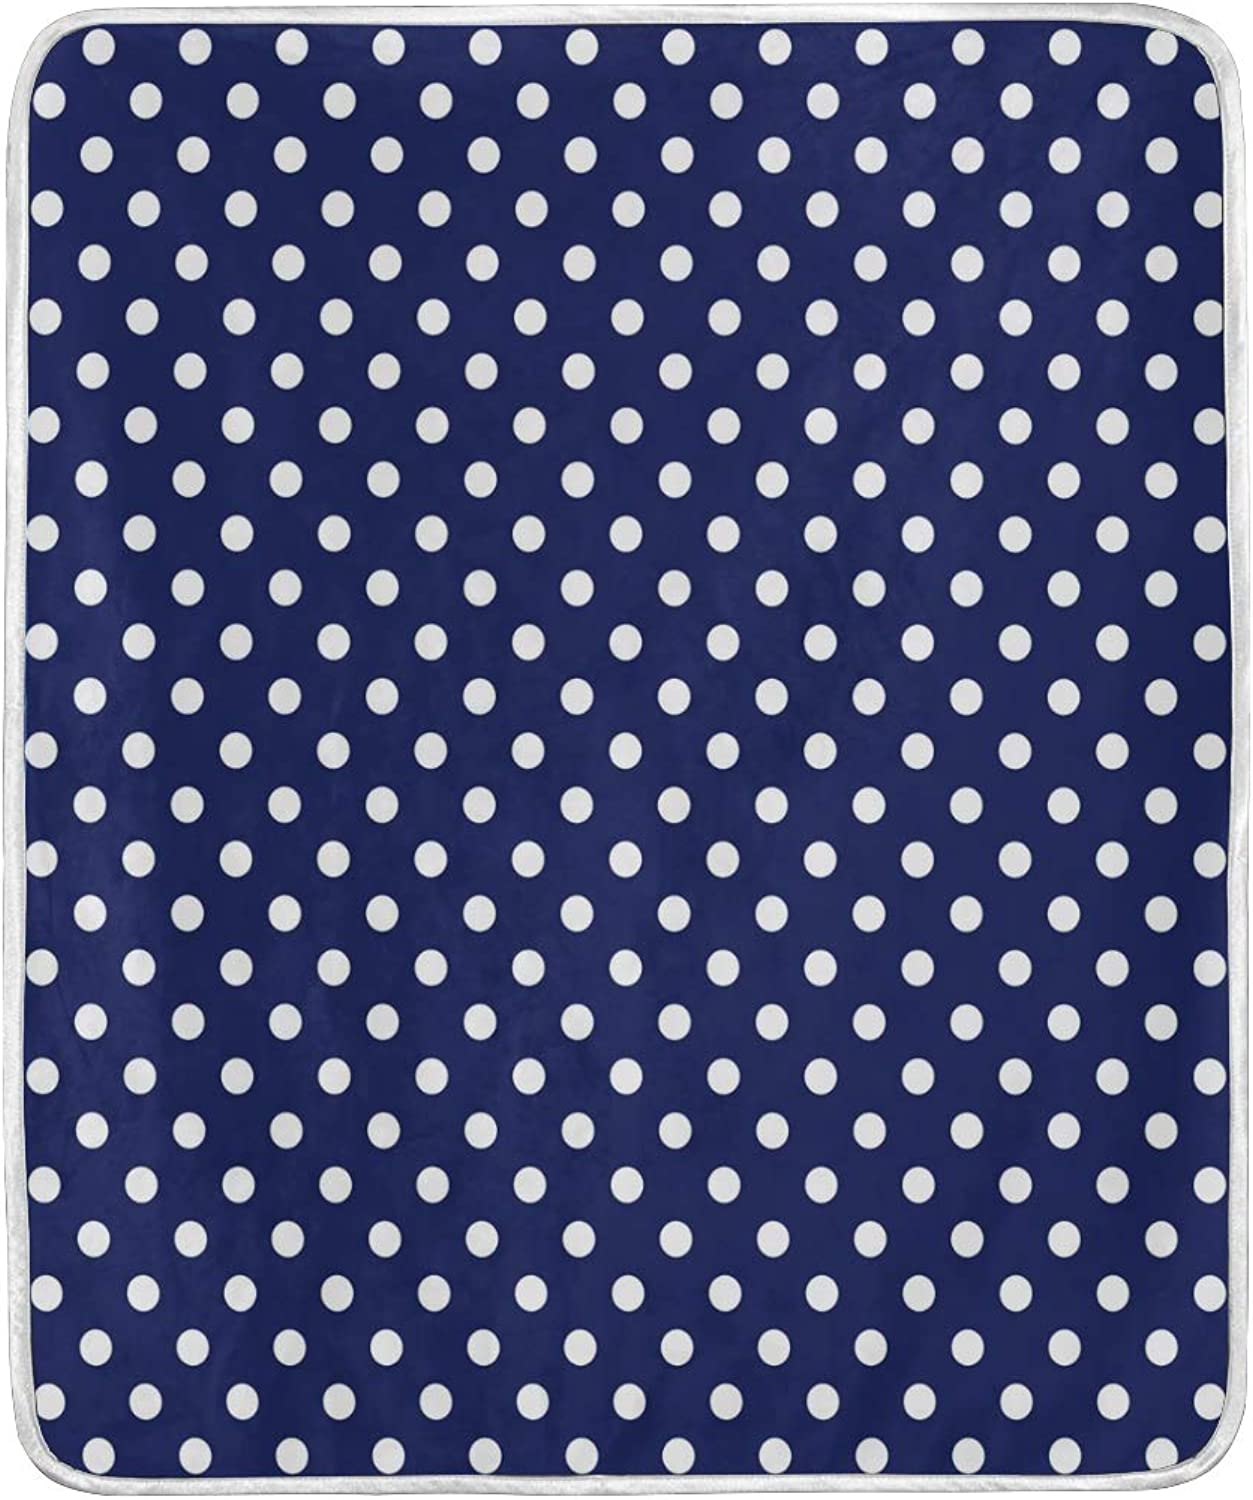 OPRINT Home Decor Navy bluee Polka Dots Bed Blanket Lightweight Comfy Soft Warm Blanket Throw Size 50 x 60 inches for Kids Boys Women Sofa Couch